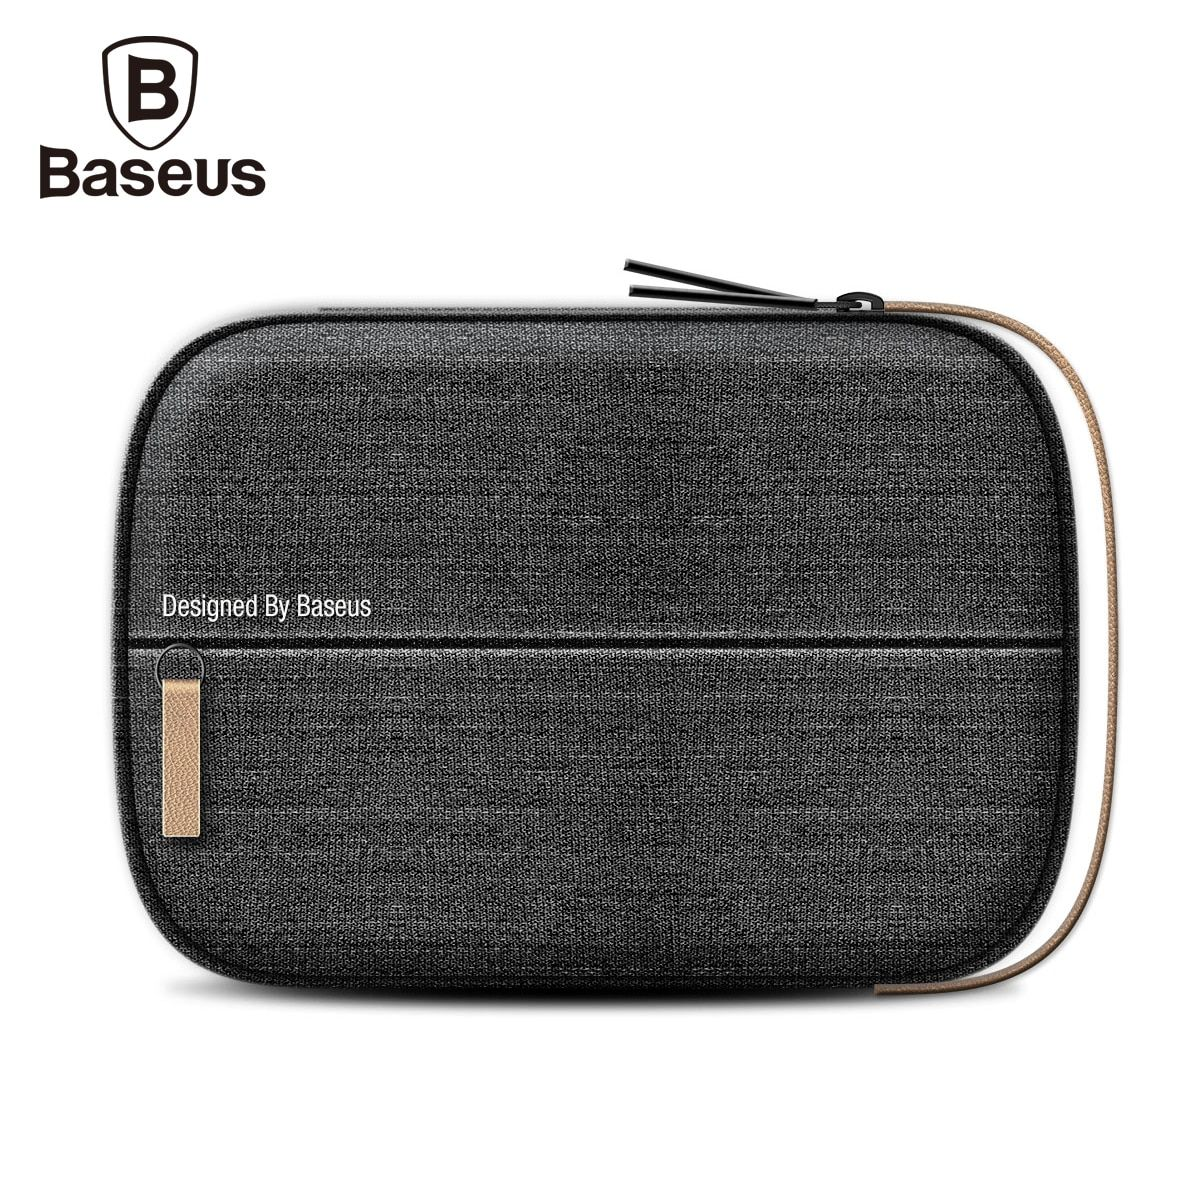 Baseus Phone Pouch For iPhone Samsung Xiaomi Mobile Phone Bag Waterproof Cloth Simple Storage Package Phone Accessories 9.6 Inch